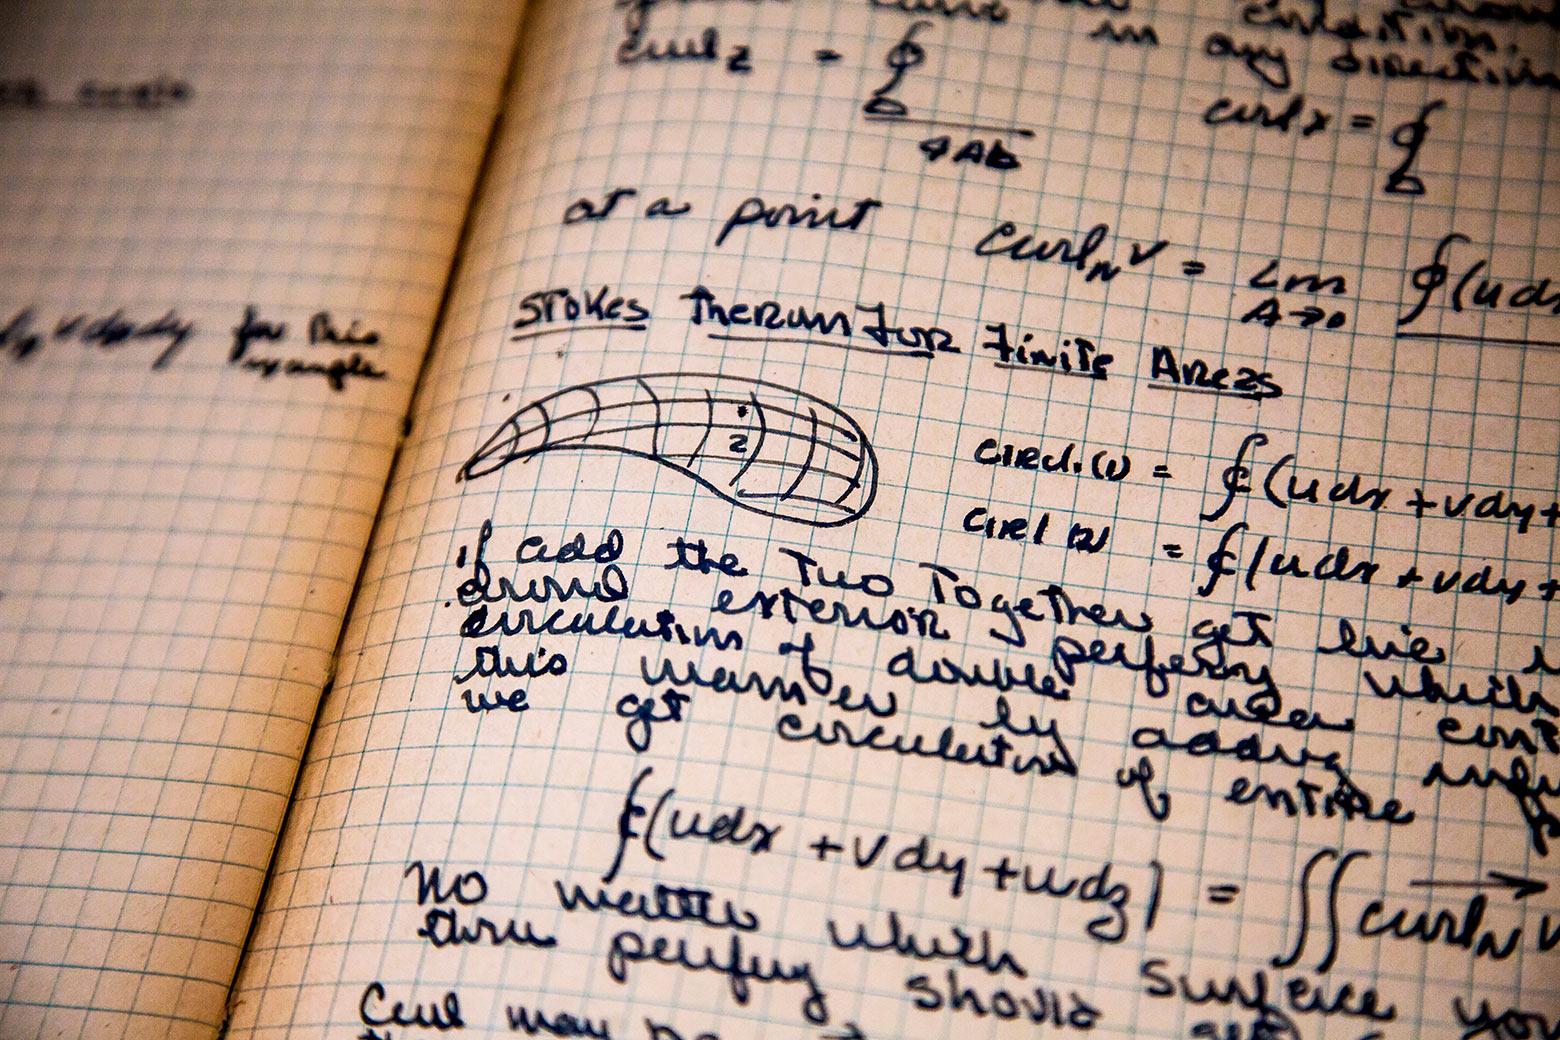 Dr. Beyster's notebook, on display at the U-M Nuclear Engineering Building